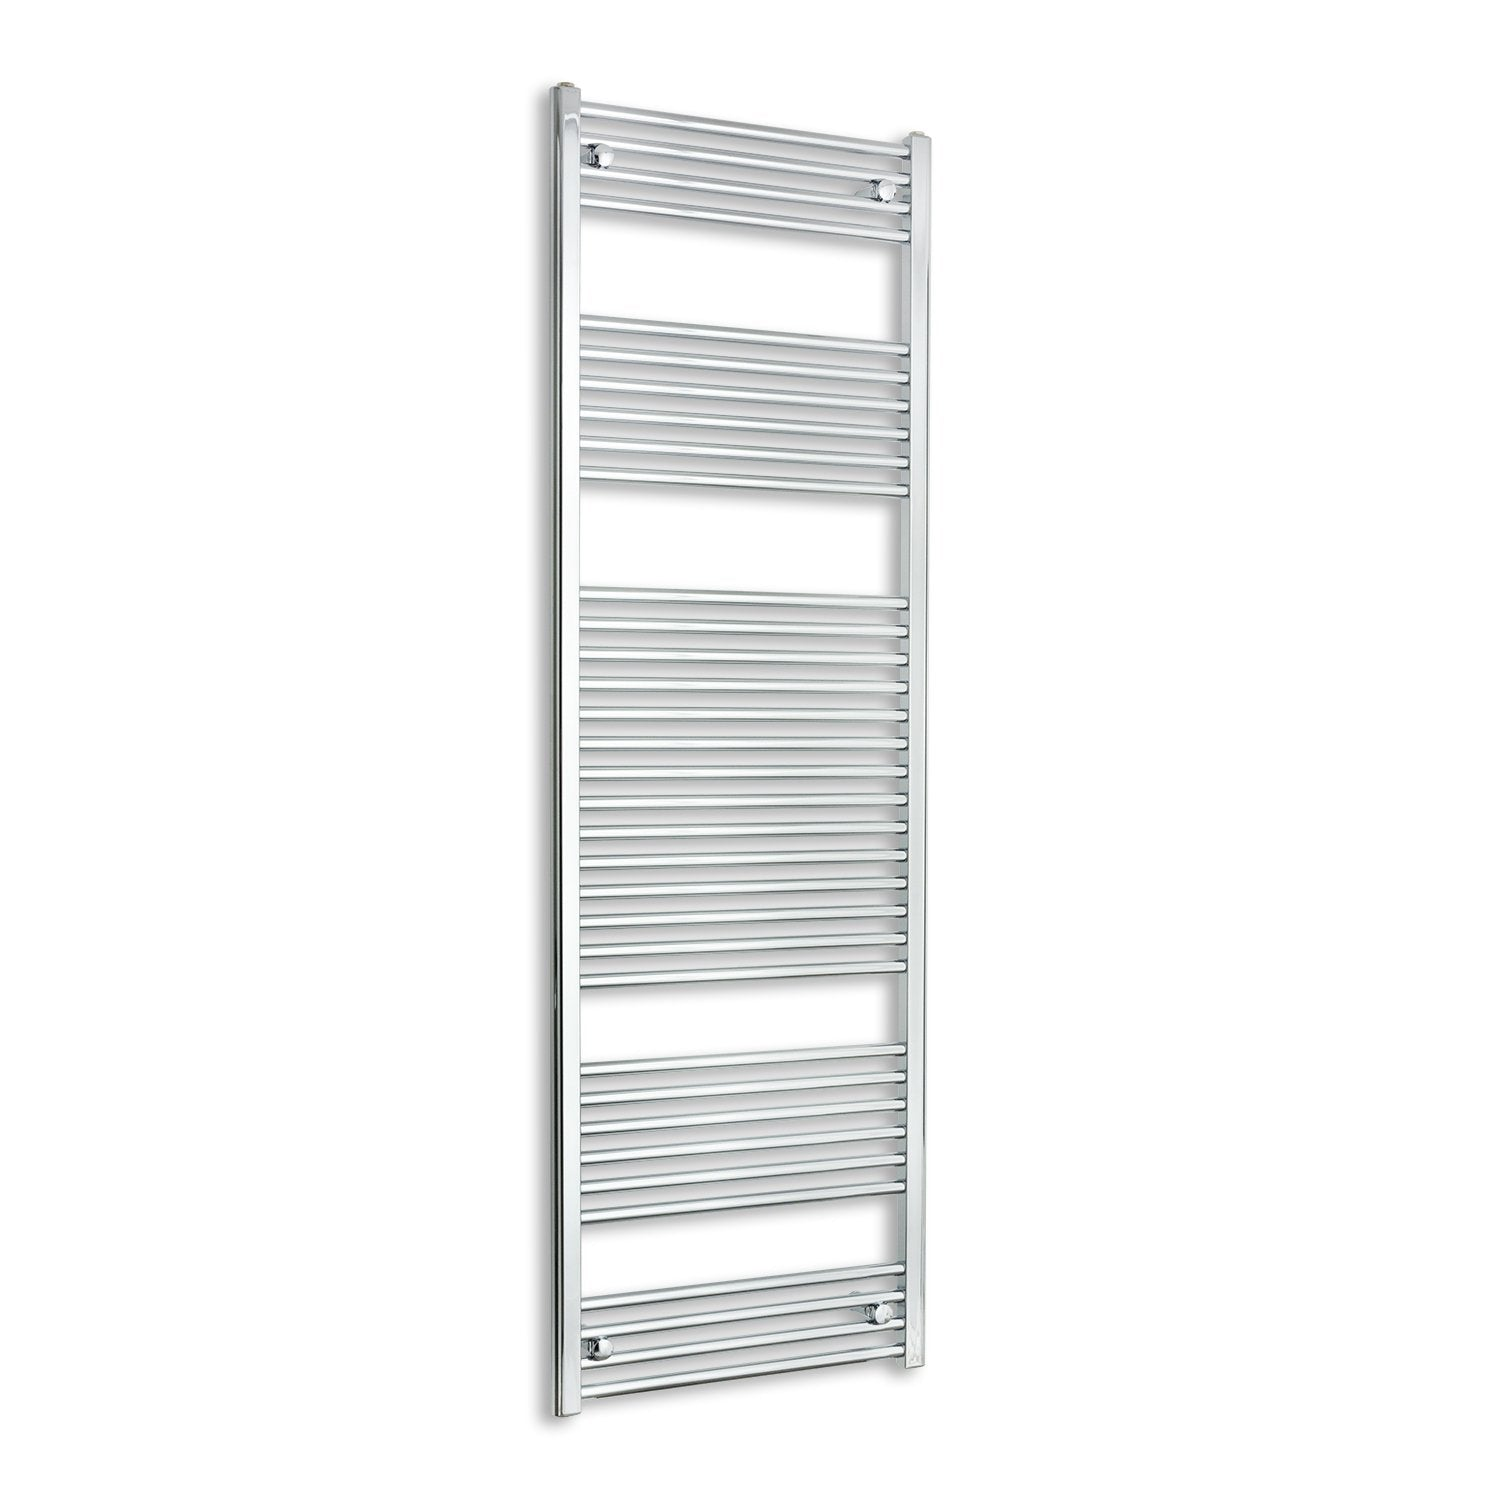 500mm Wide 1800mm High Chrome Towel Rail Radiator